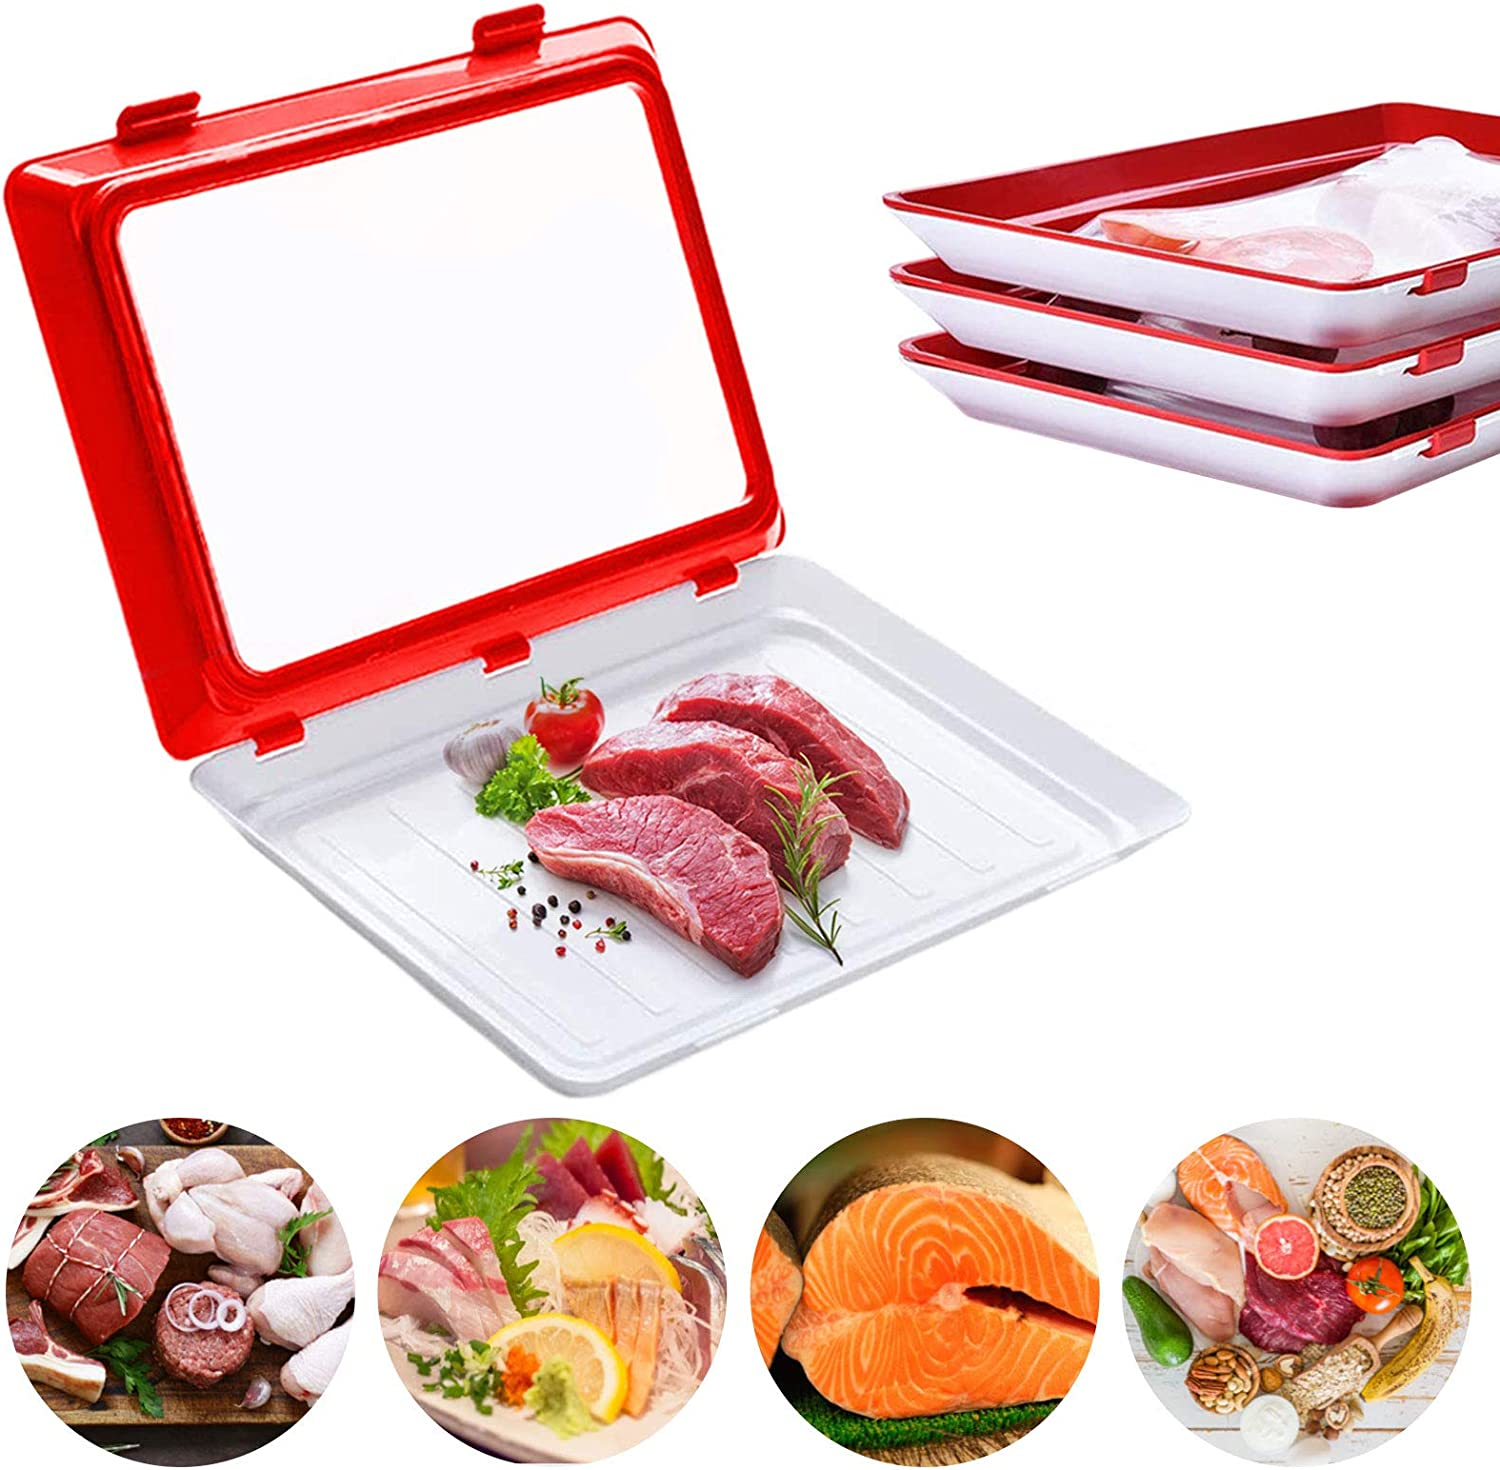 Food Plastic Preservation Tray,Stackable and Reusable Food Preservation Tray Keep Food Fresh for a Long Time for Sealing Food(4 PACK)